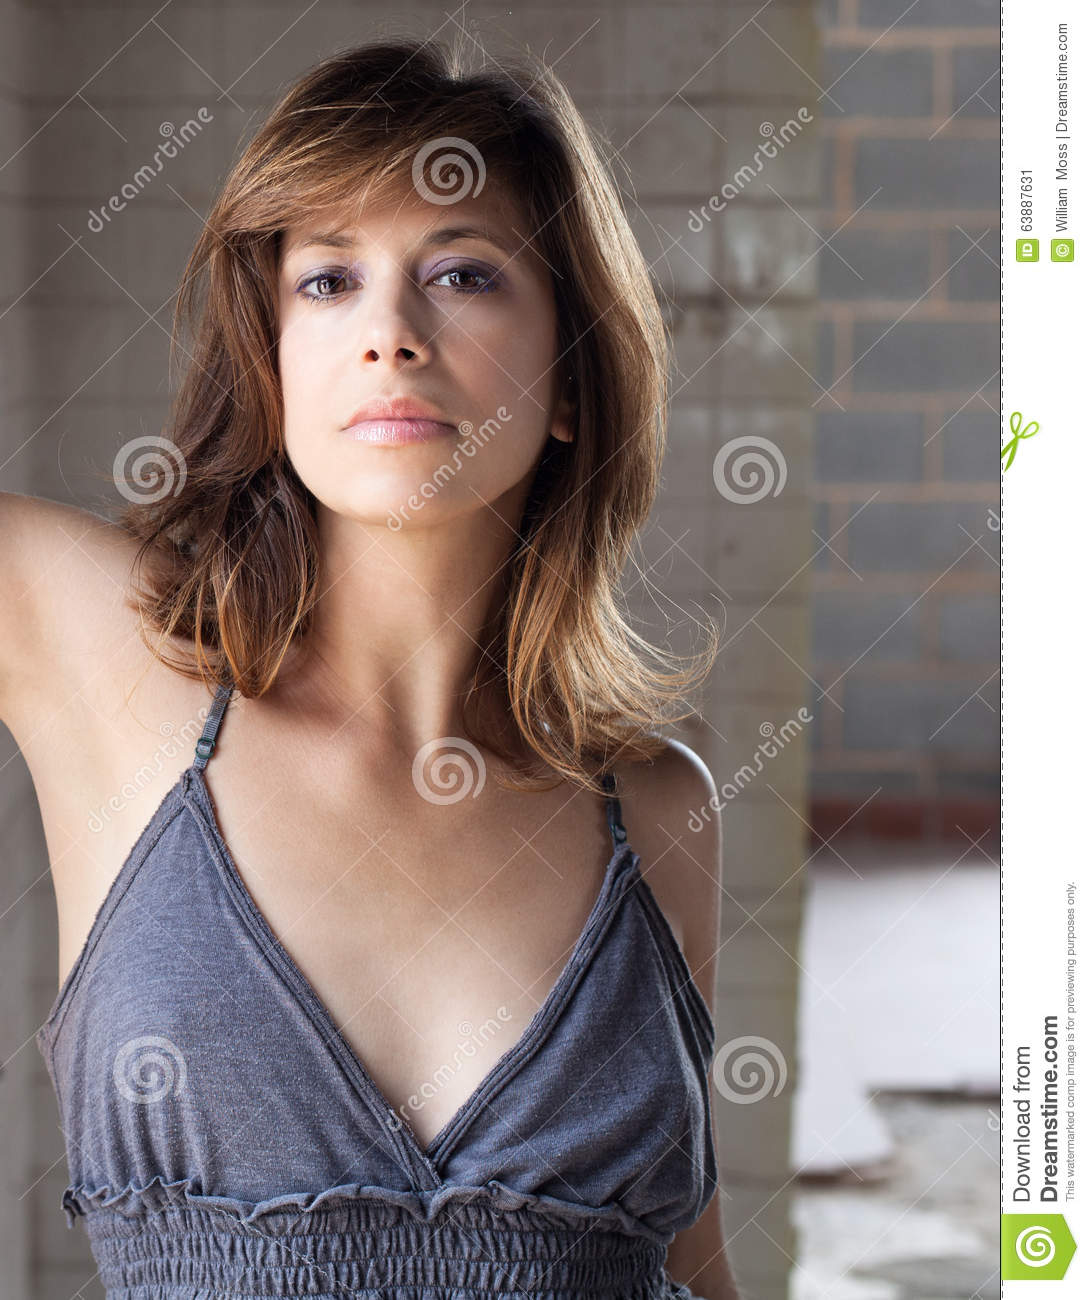 Woman In Gray Top And Purple Eye Shadow Stock Image Image Of Adult